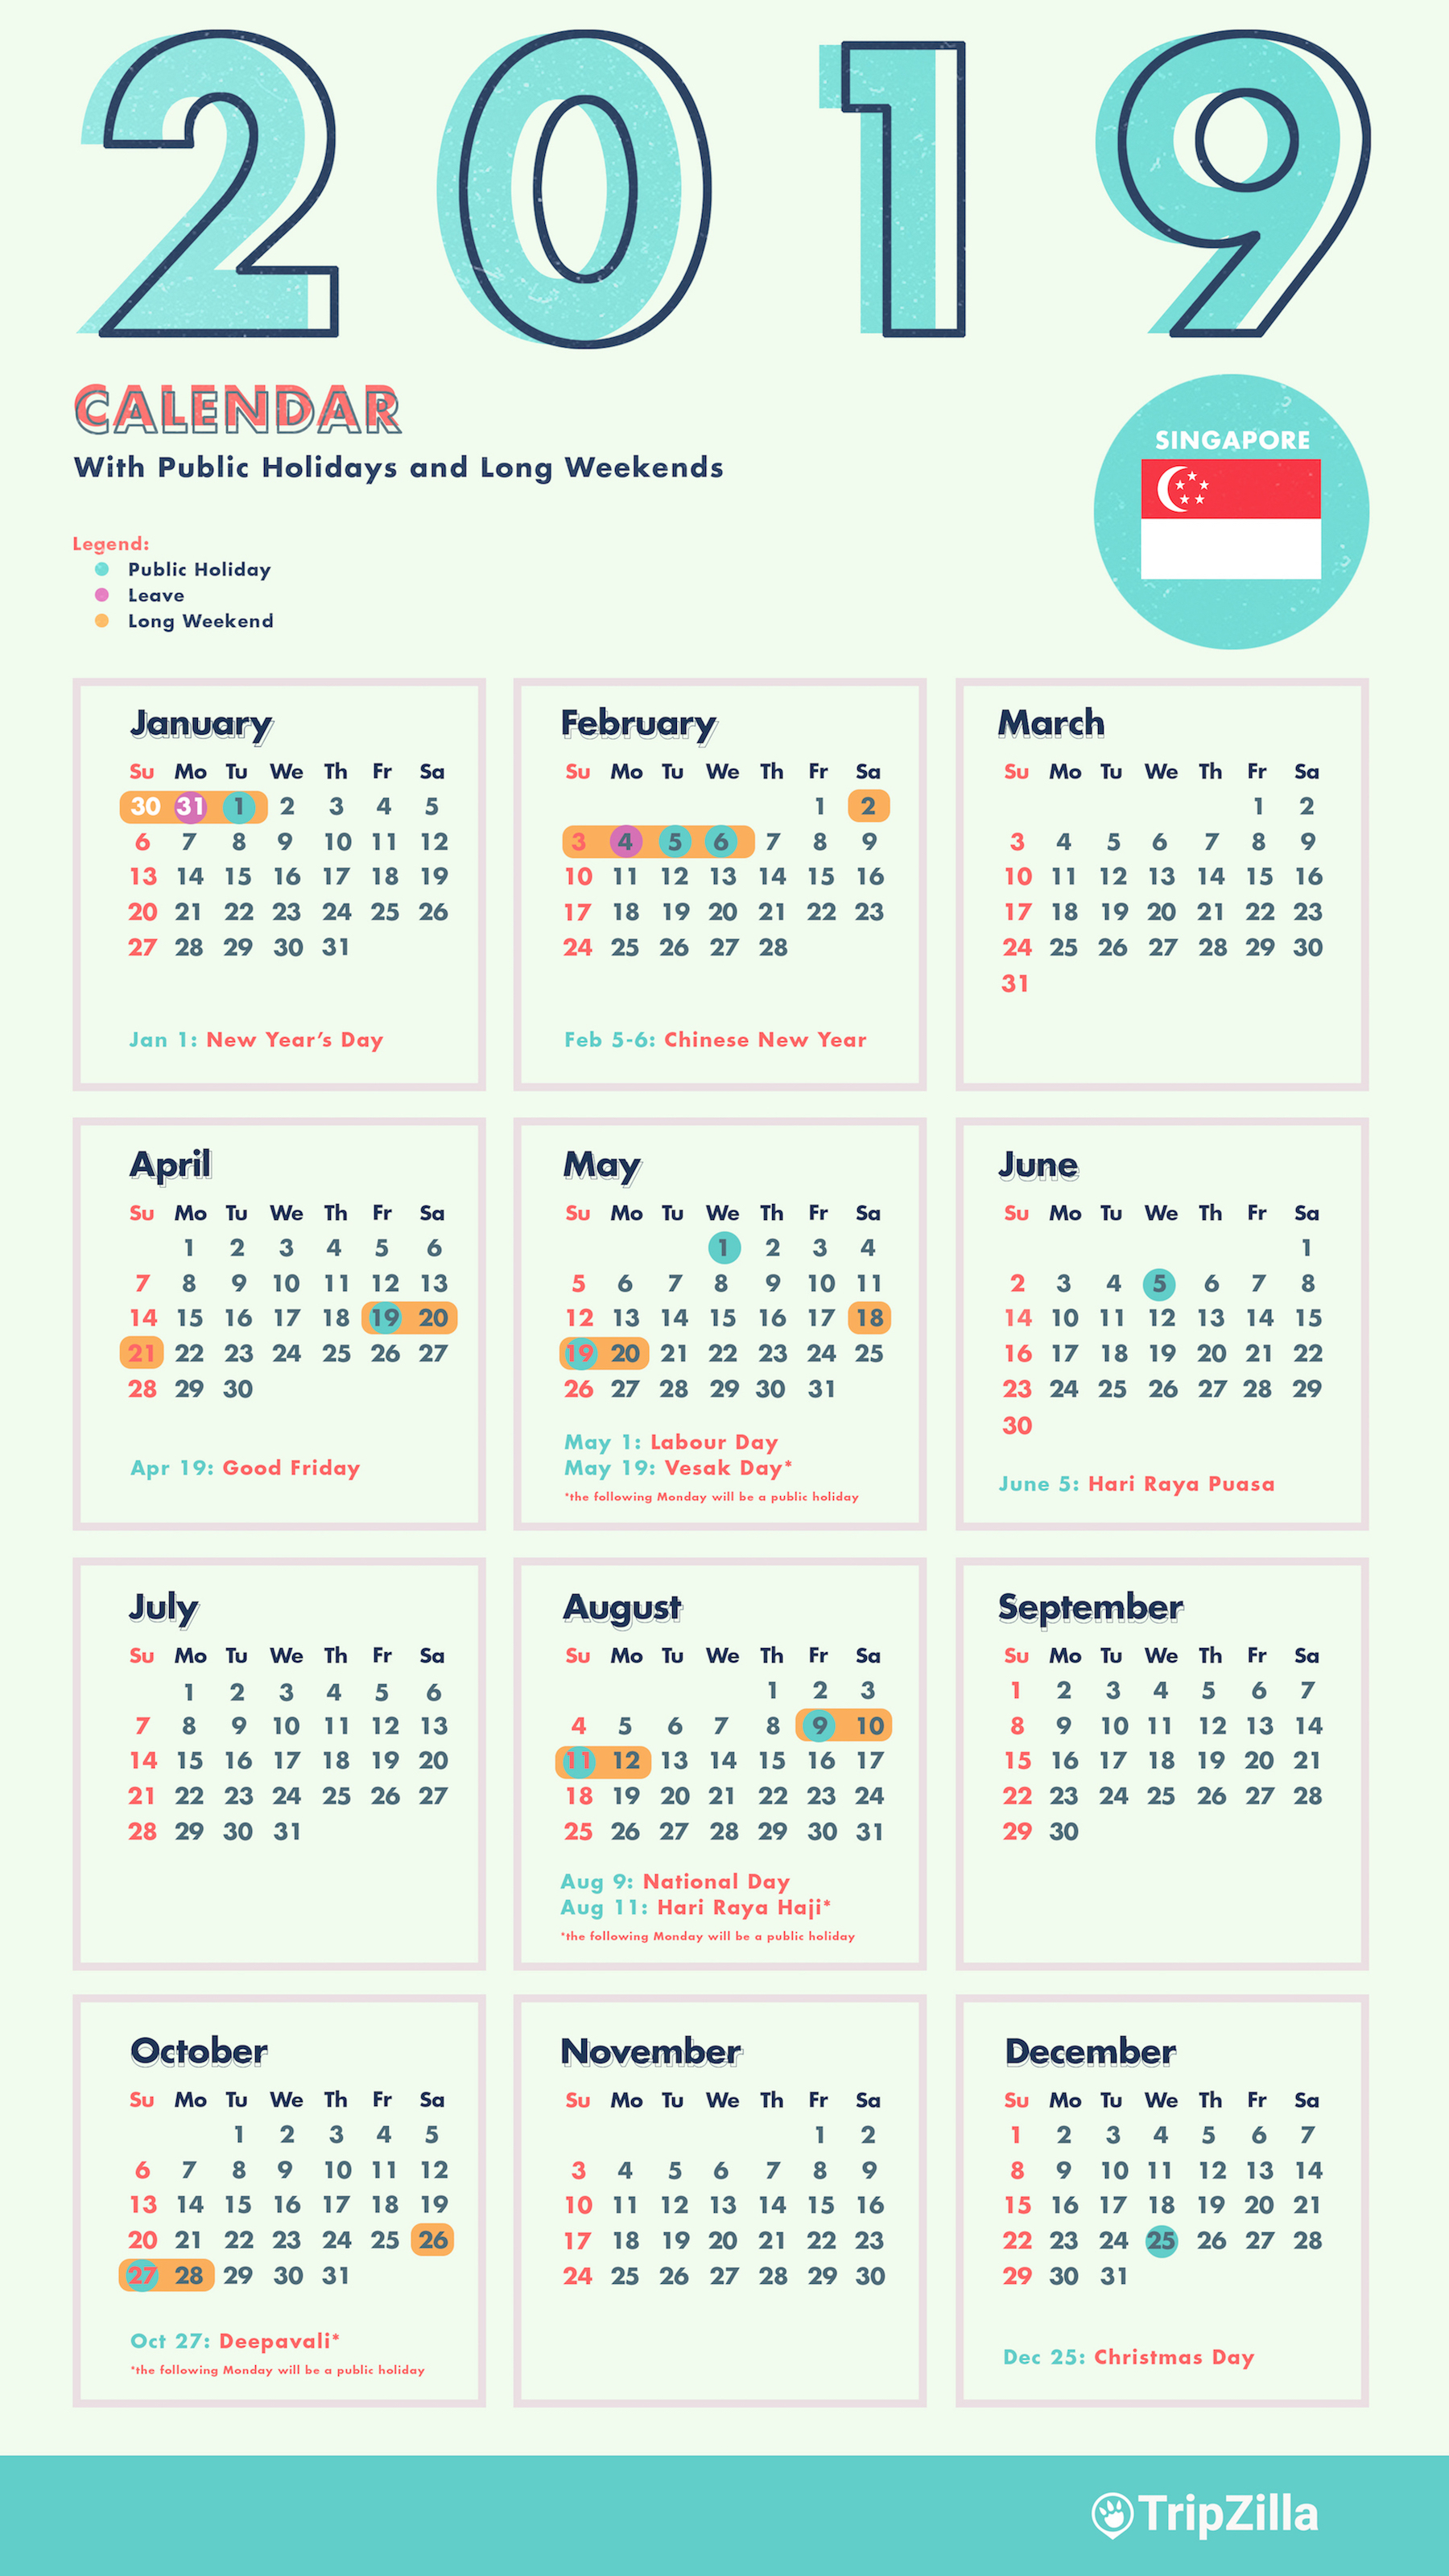 Calendar 2019 Chinese New Year With 6 Long Weekends In Singapore Bonus Cheatsheet